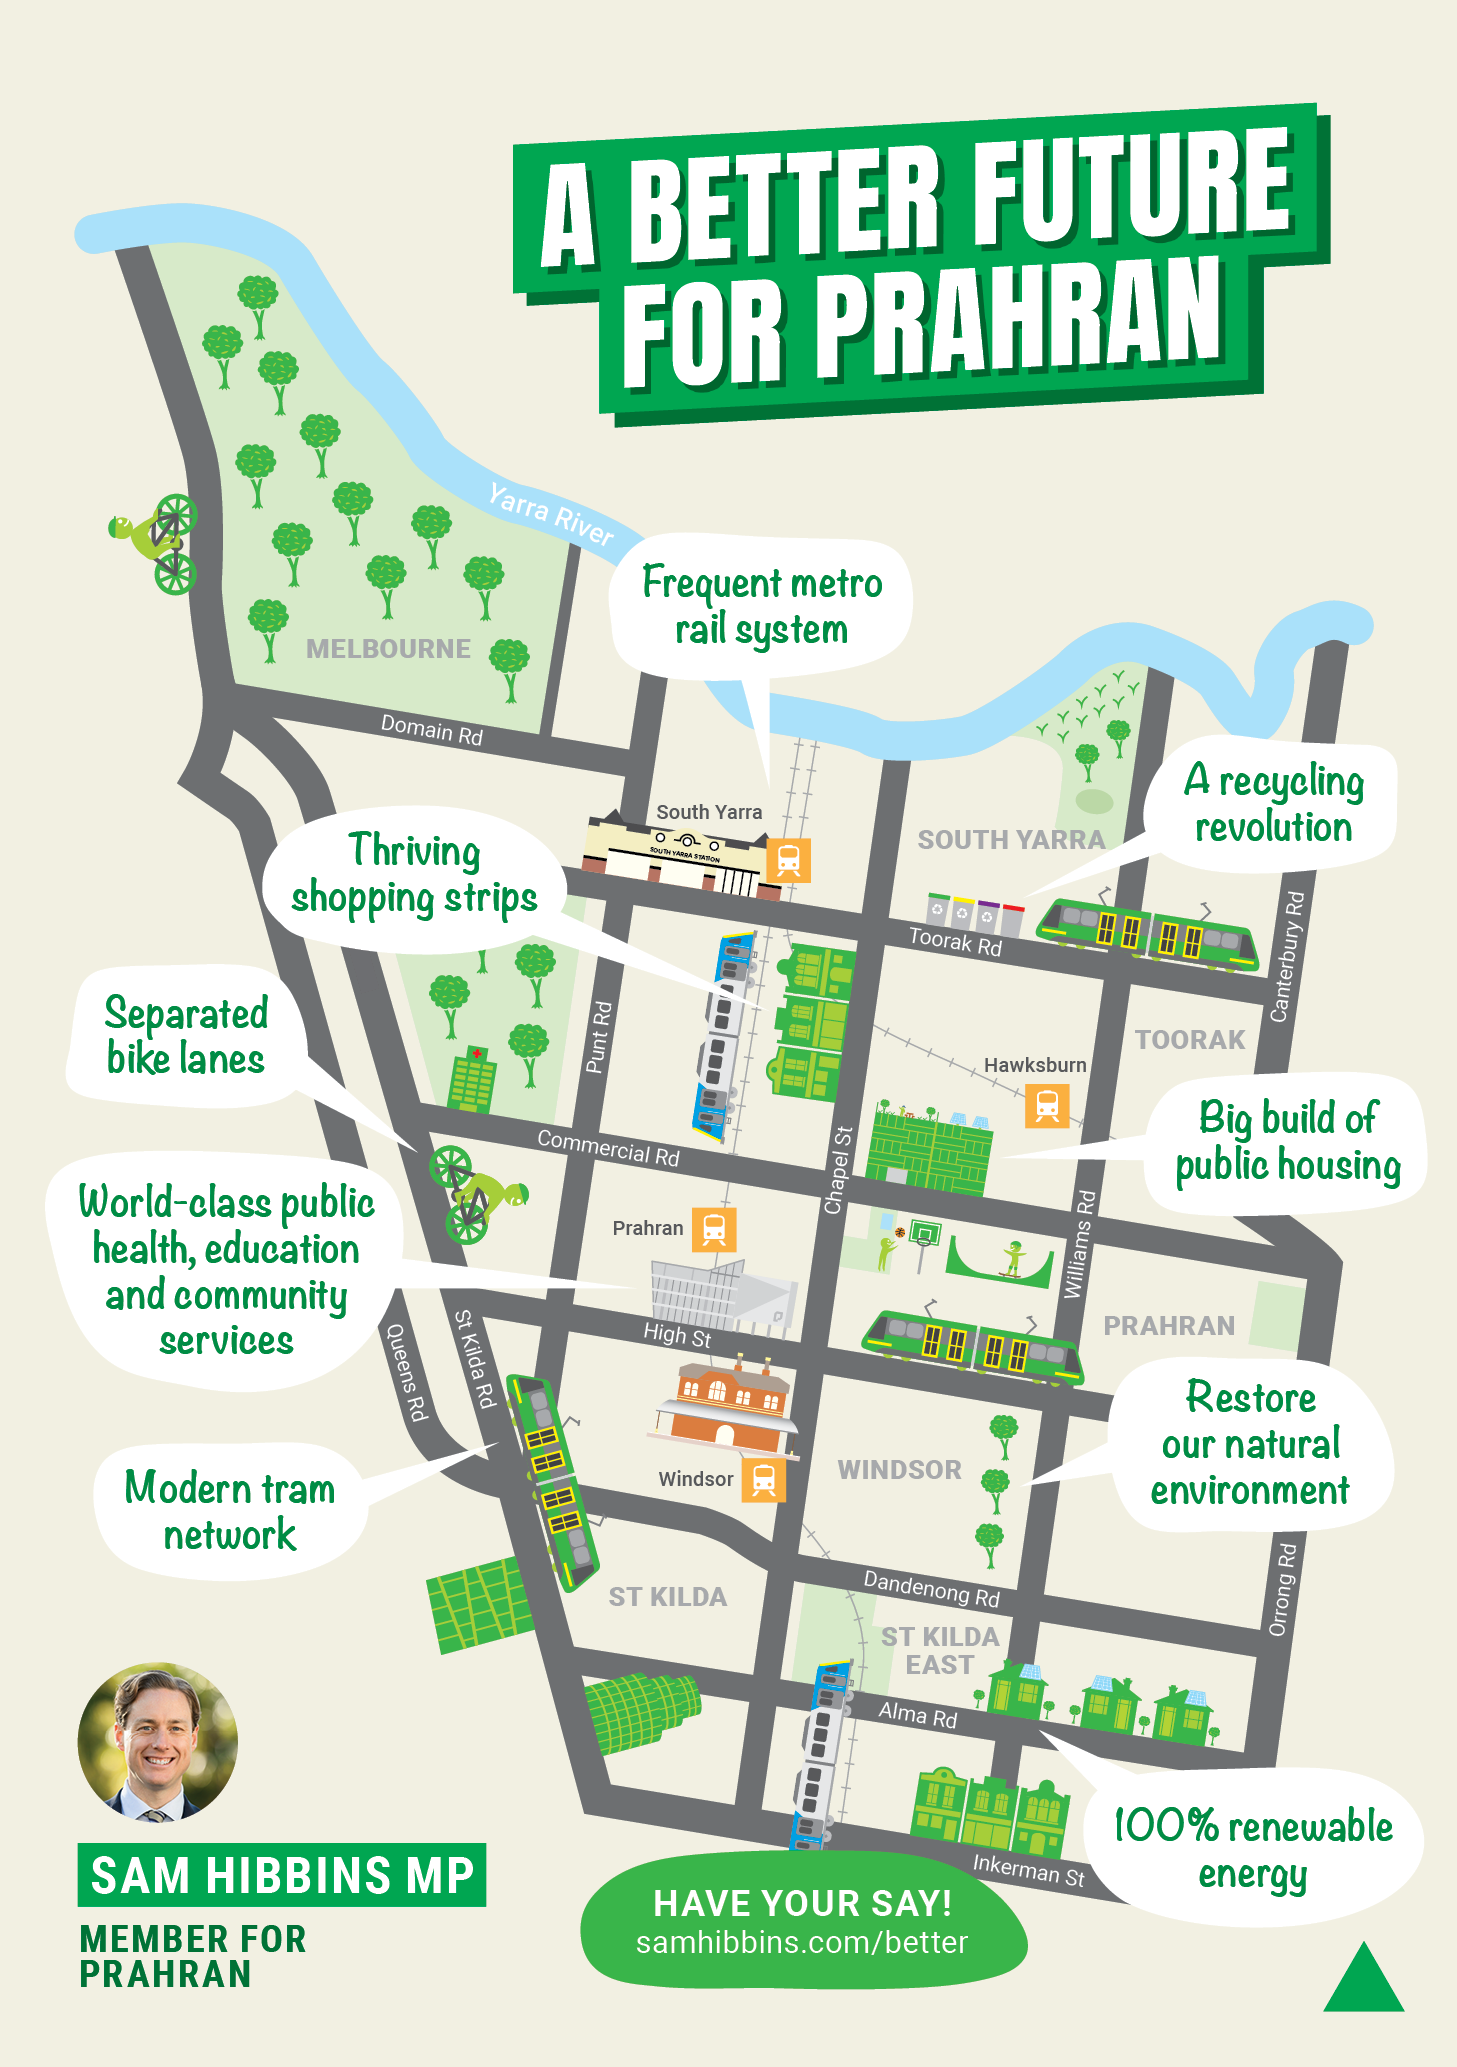 A better future for Prahran